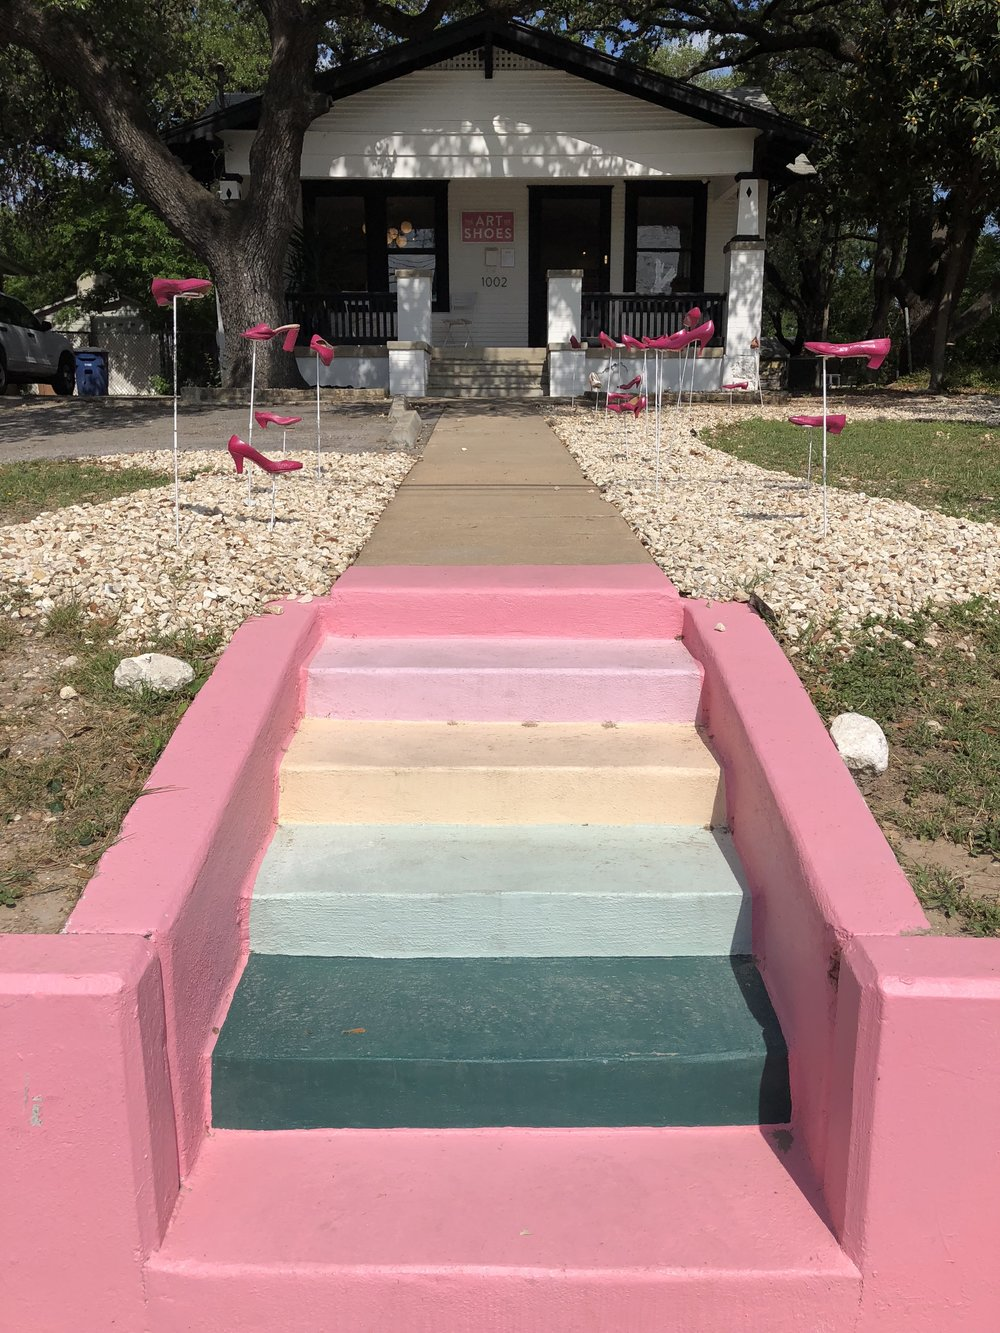 These colorful steps lead up to one of Austin's best boutiques to shop for shoes, The Art of Shoes.